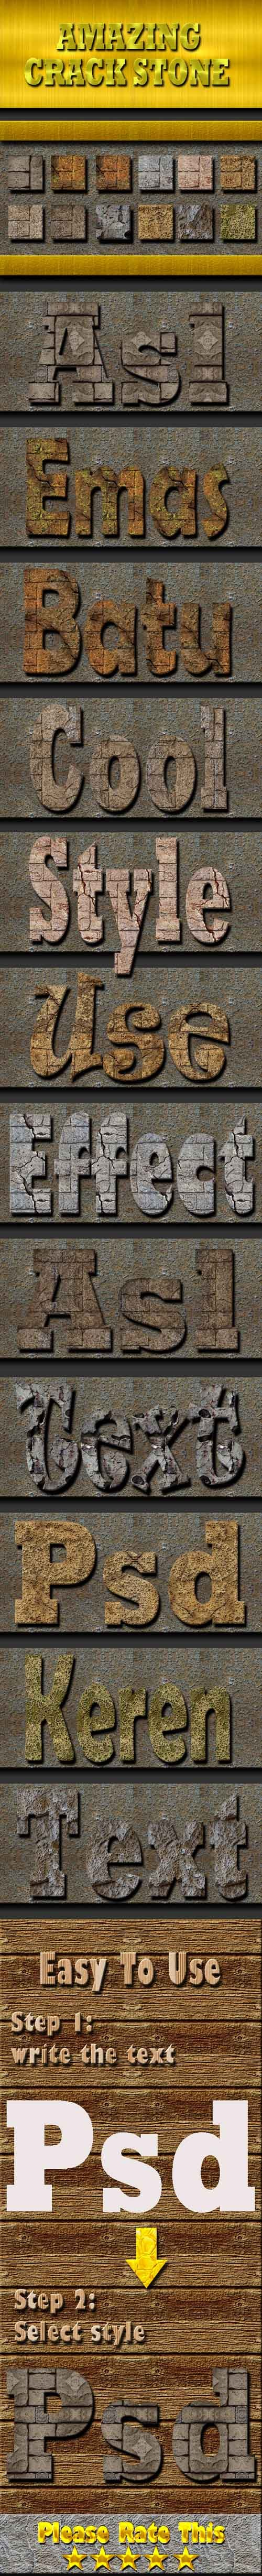 Cracked Stone Text Effect Style 19956728